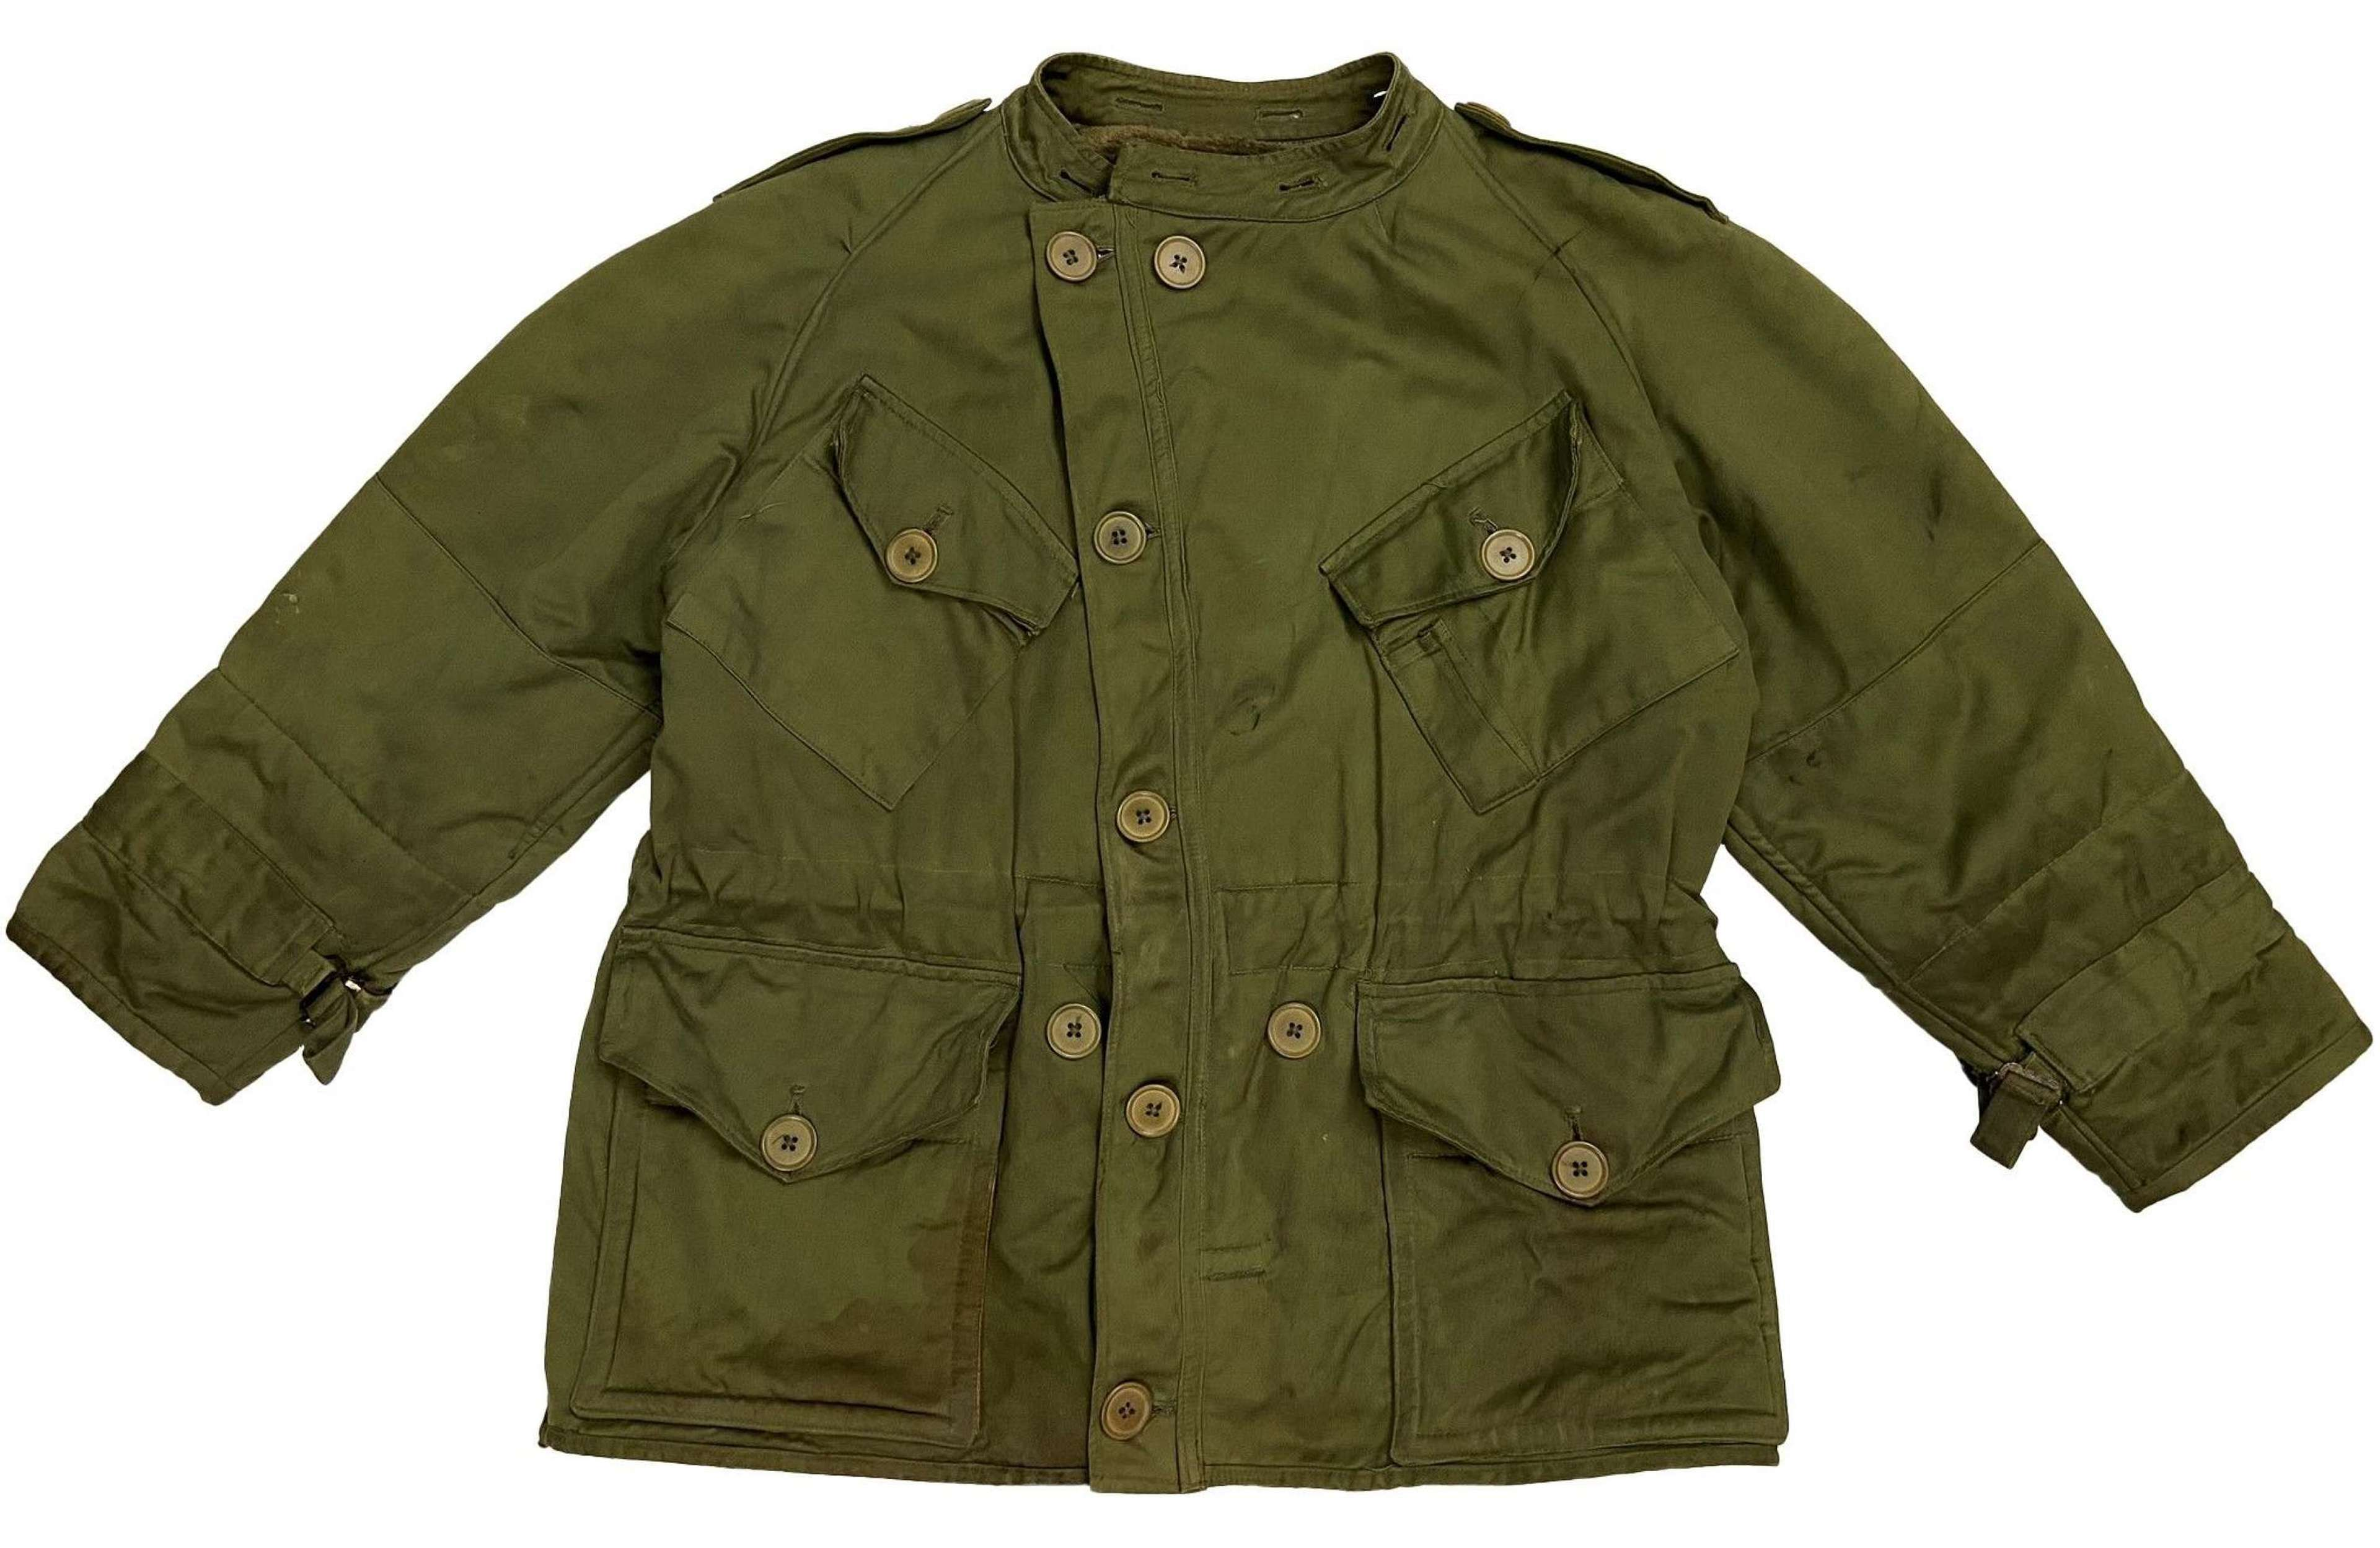 Original 1954 Dated British Army Middle Parka - Size 2